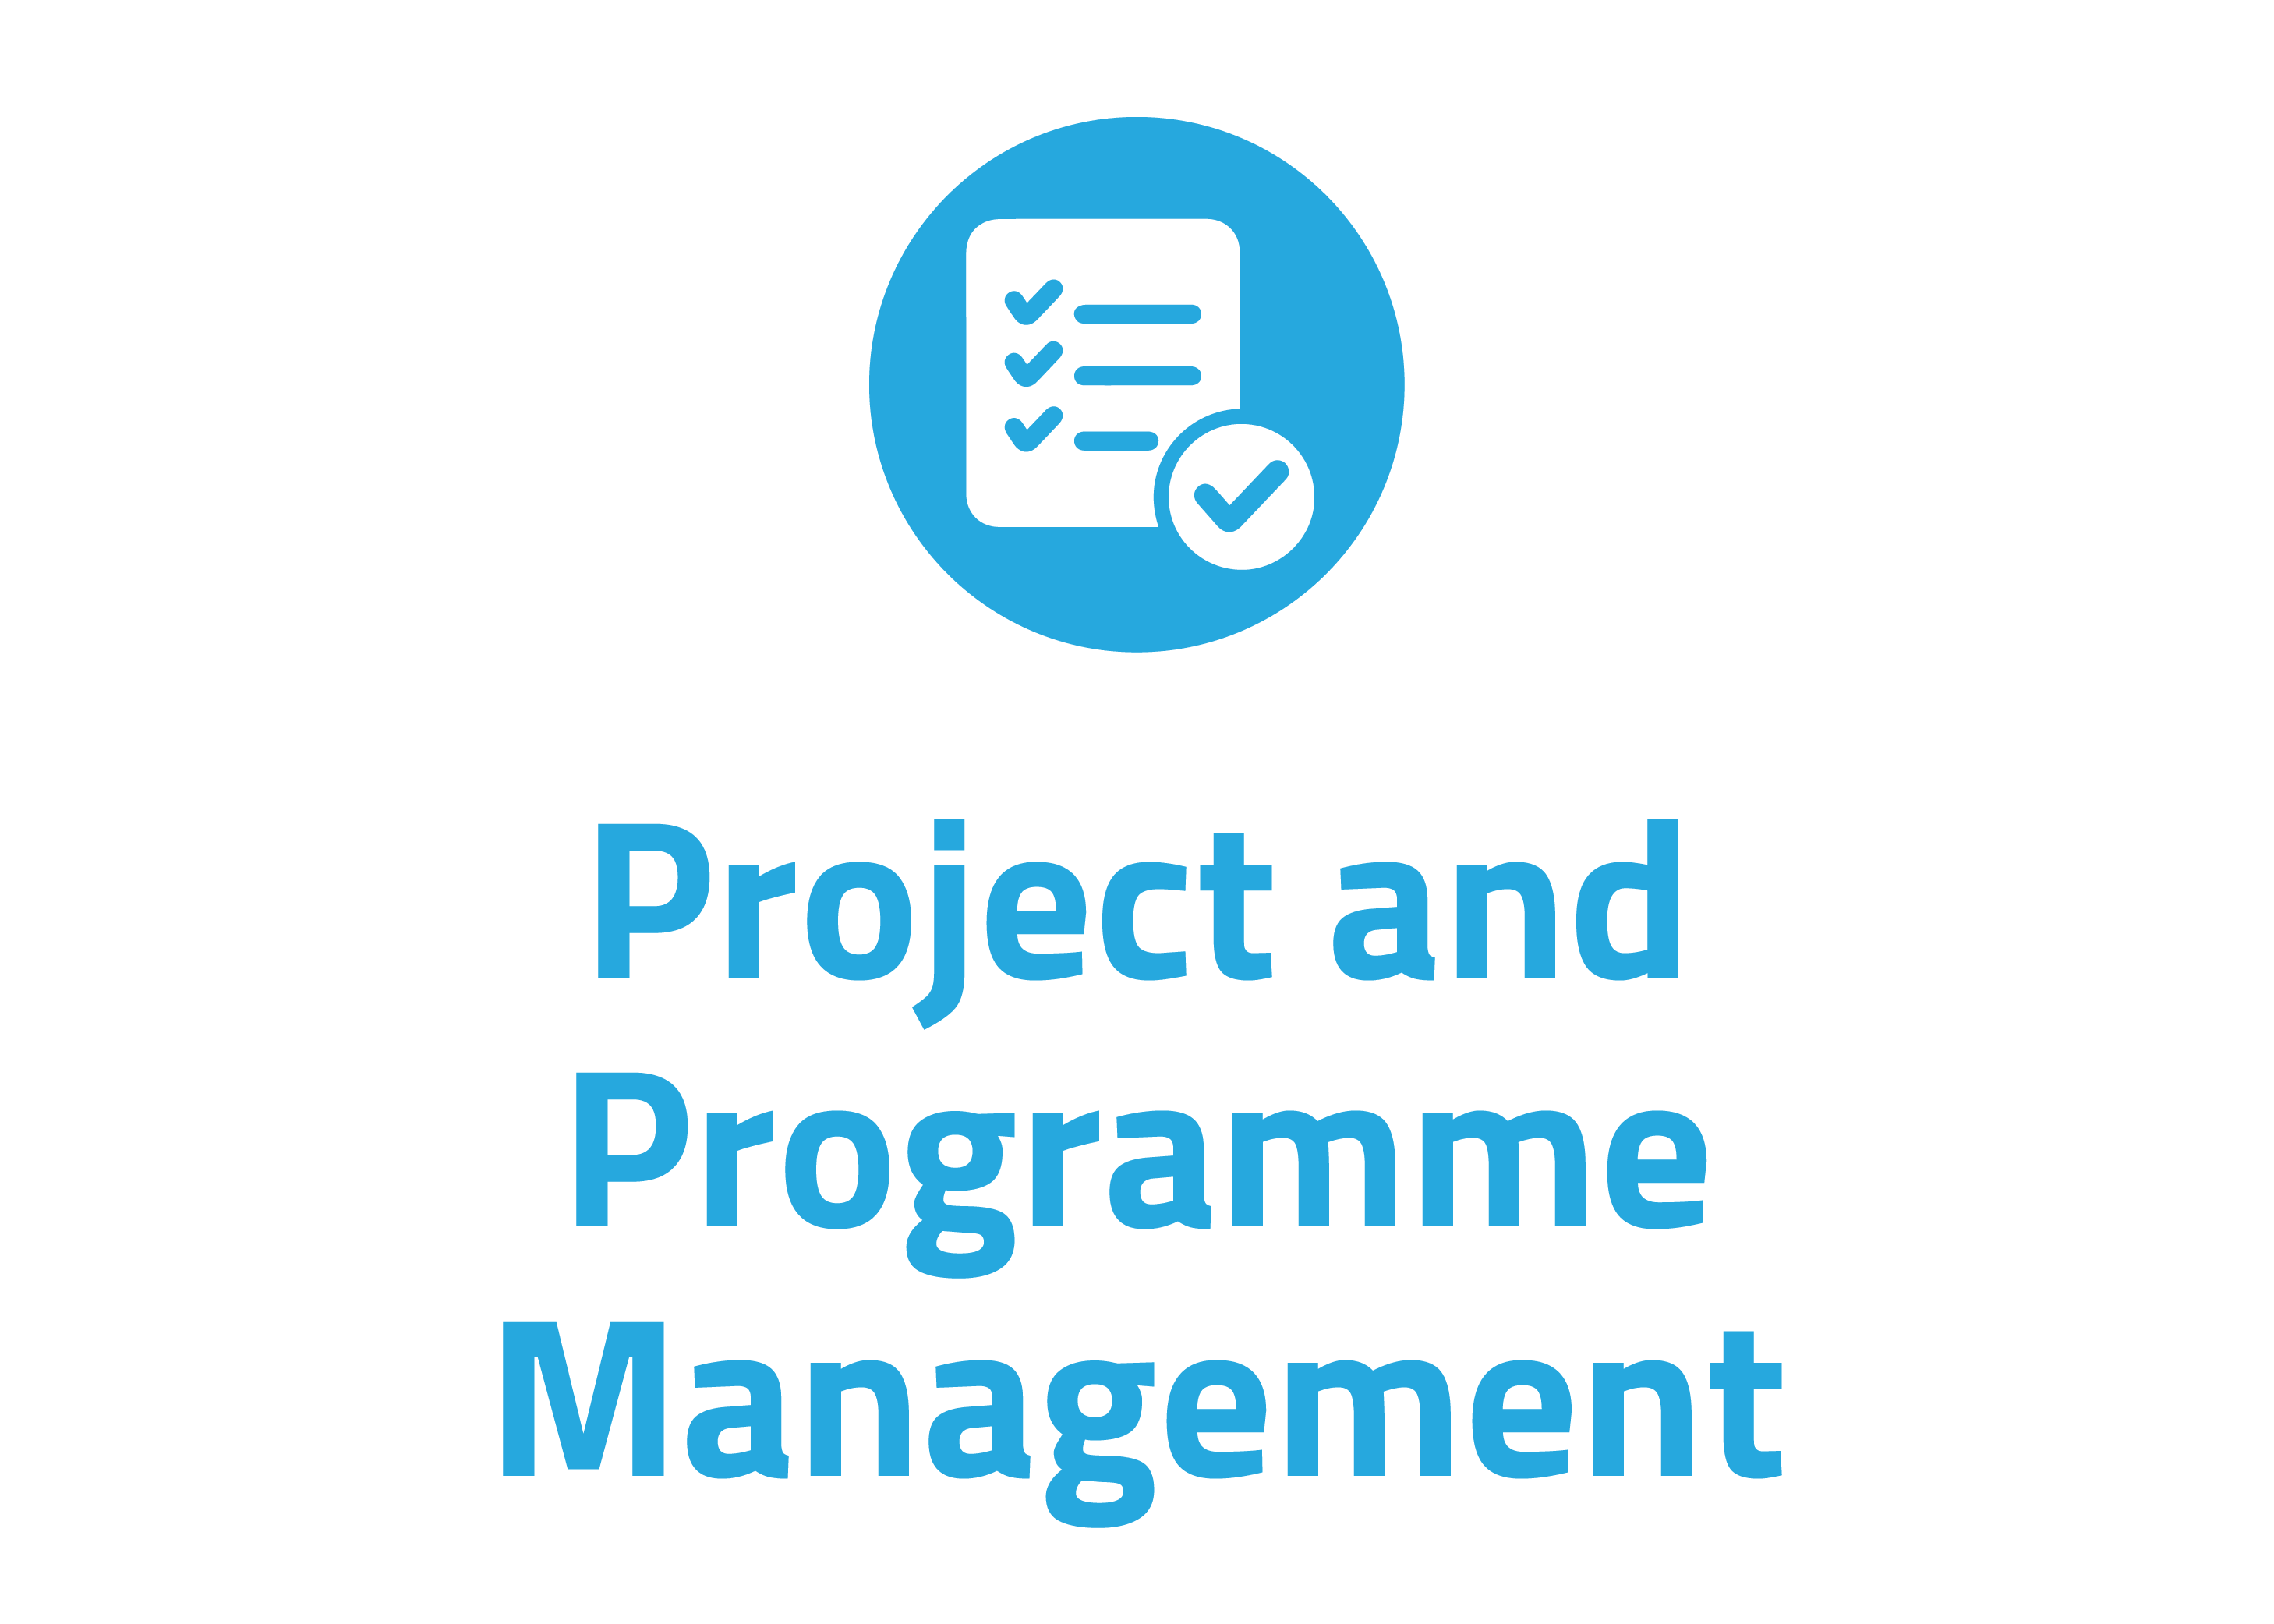 Project and programme management for the insurance industry